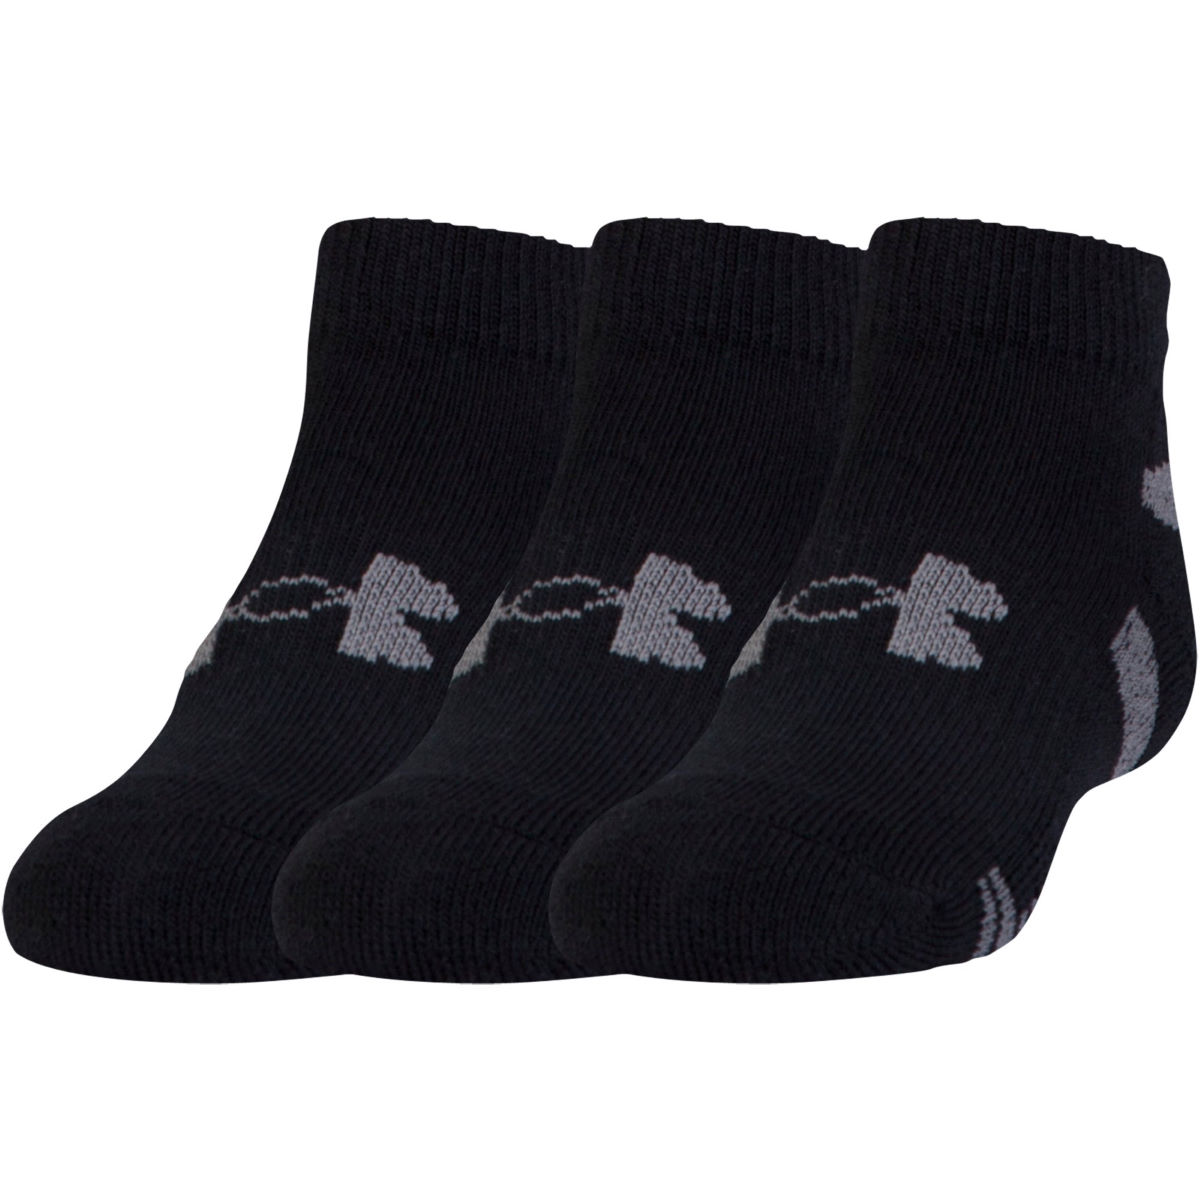 Chaussettes Under Armour HeatGear (coupe basse, lot de 3) - M